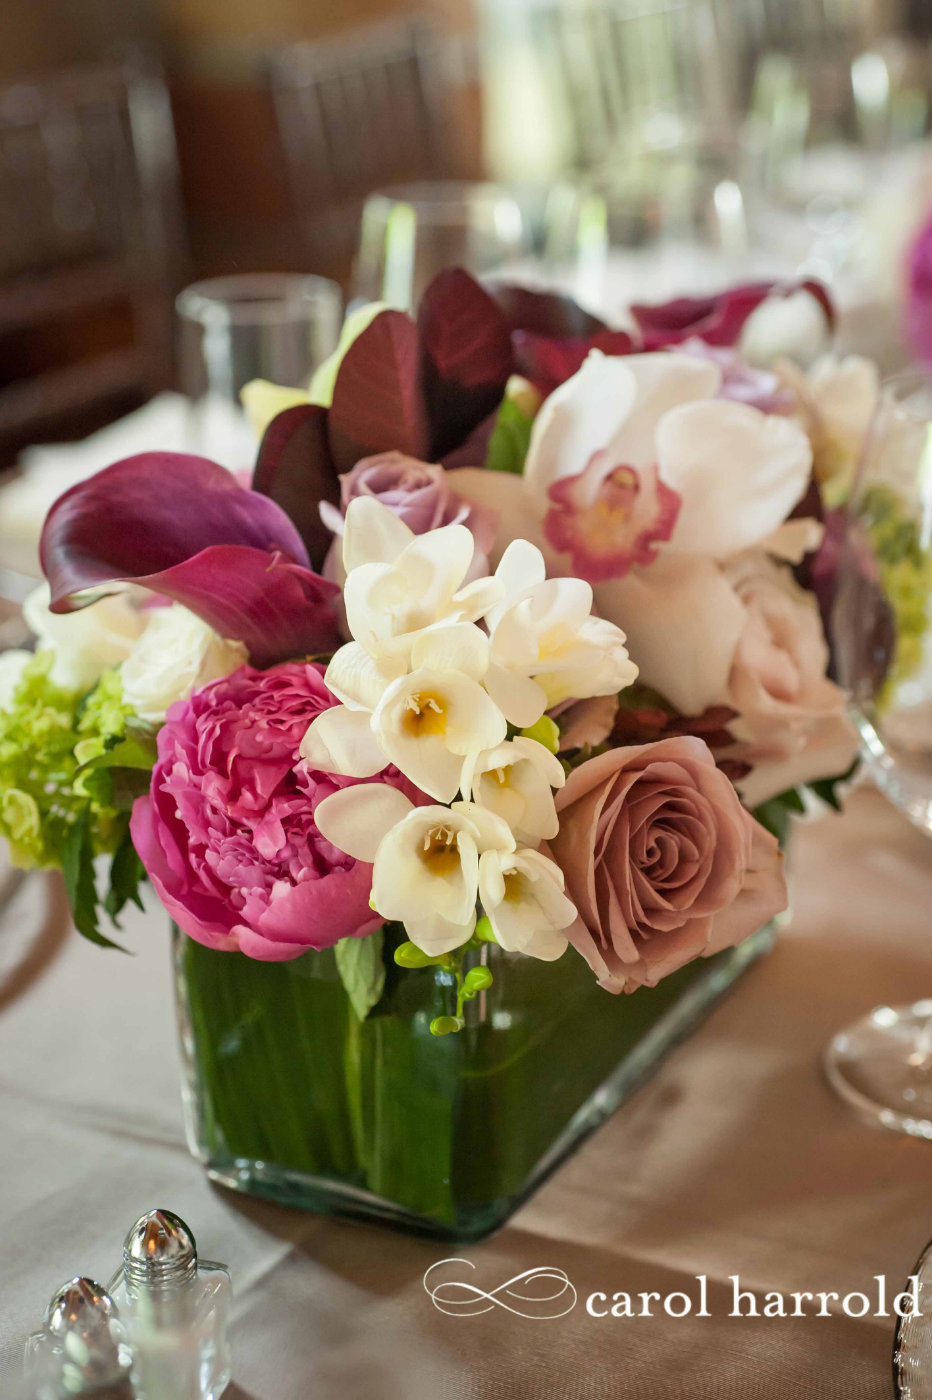 modern centerpiece of white freesia, pink peonies, purple calla lilies, mauve roses, white orchids, in leaf lines square glass vase